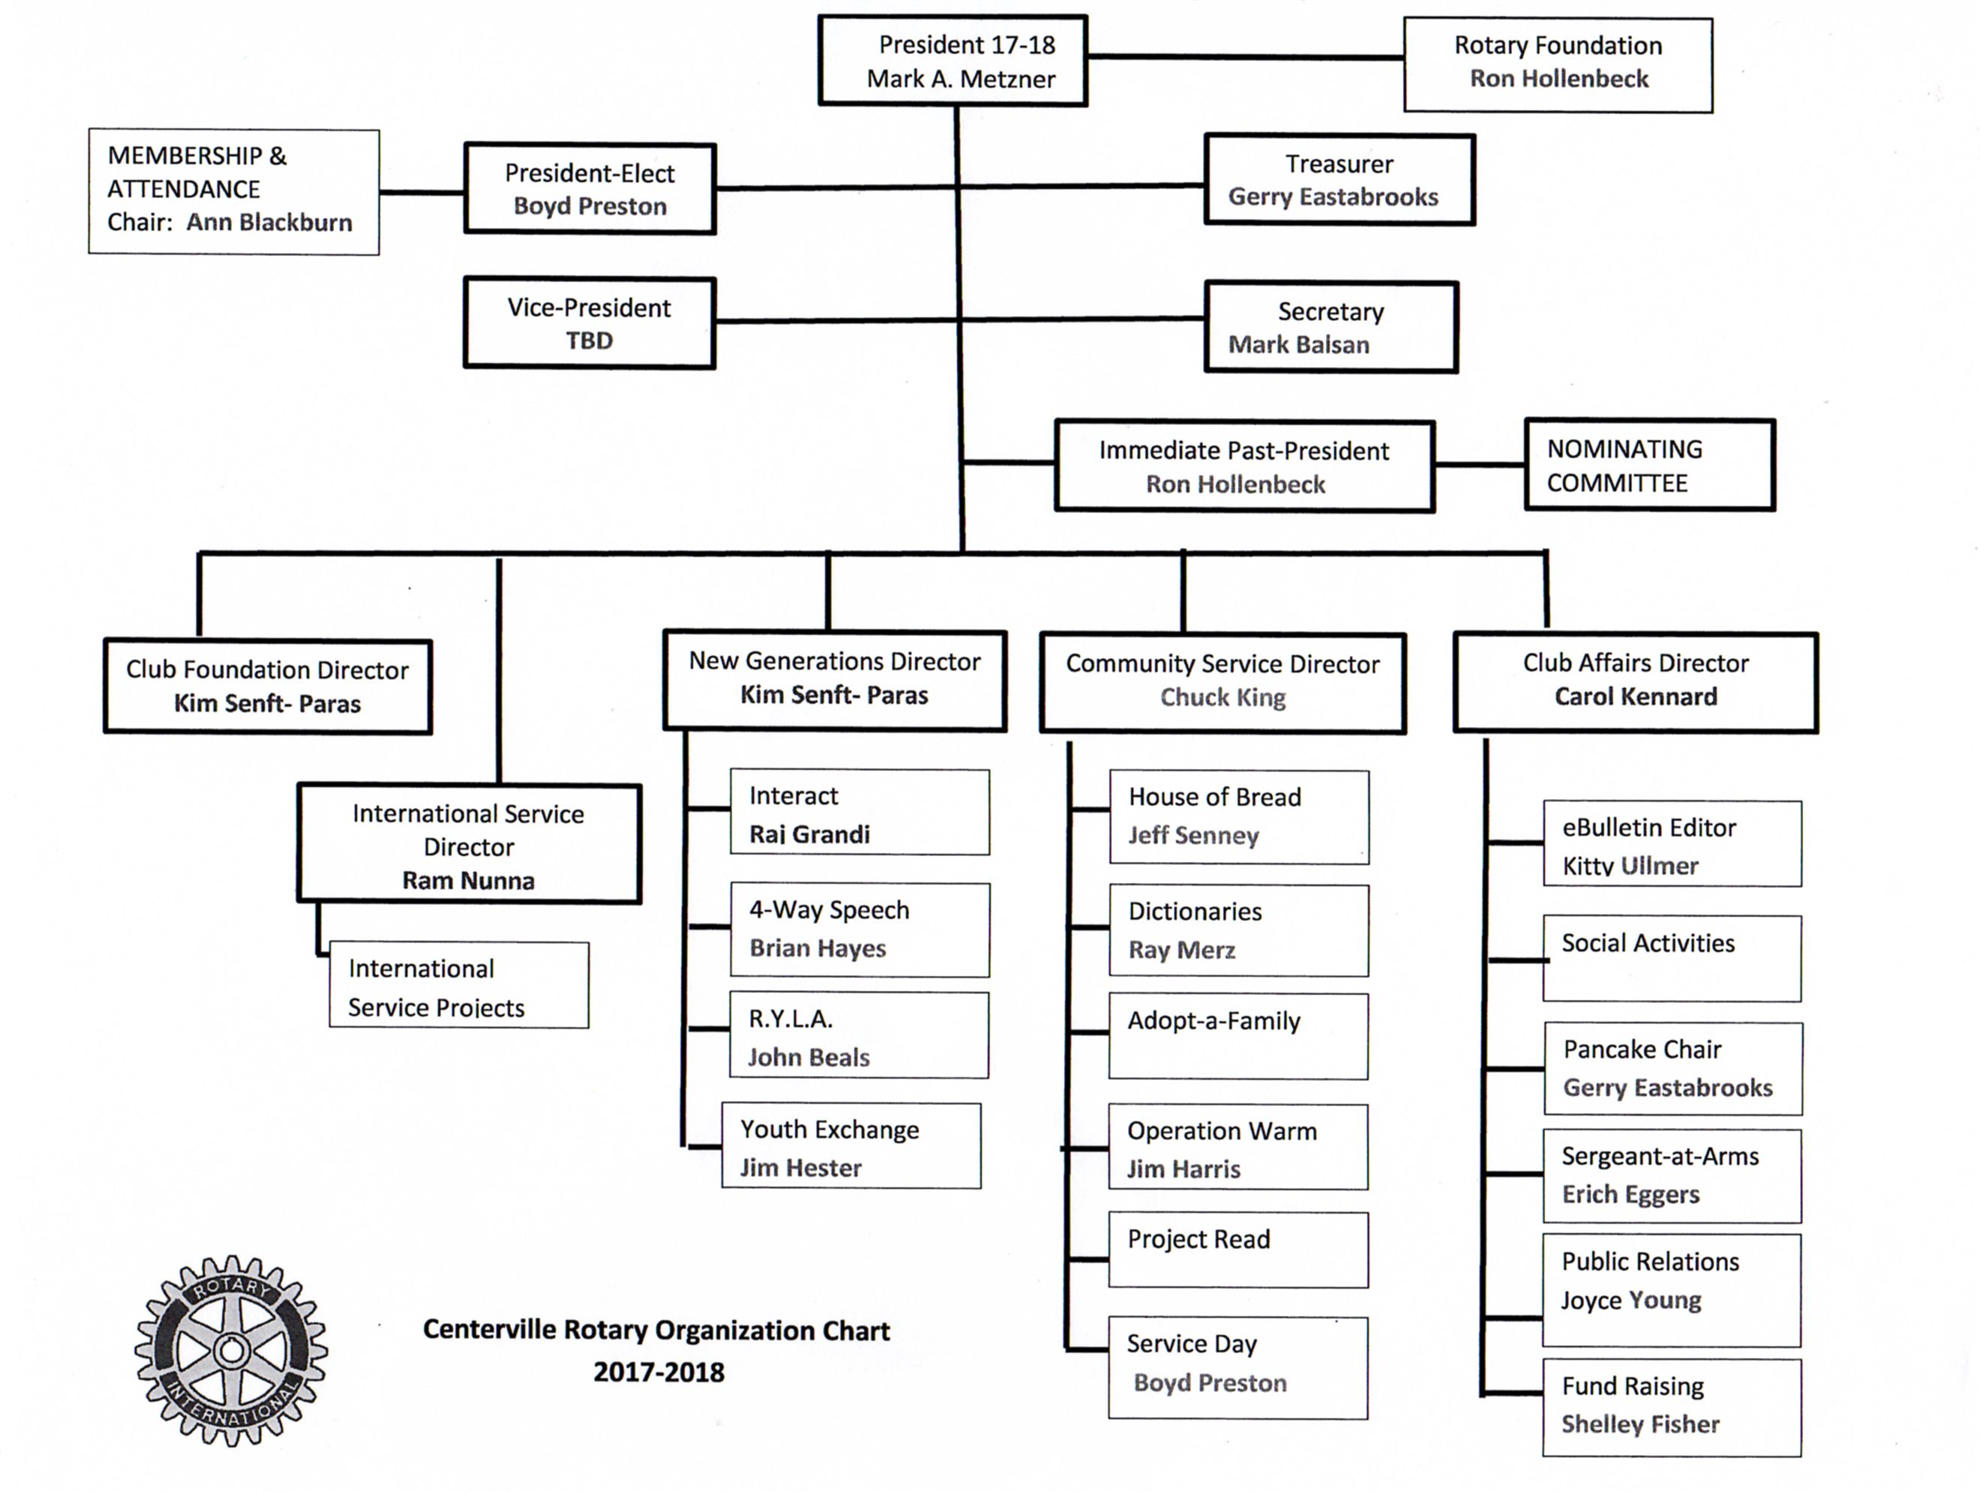 Centerville ebulletin 02 09 2017 feb 08 2017 past president brad thorp presented the current organizational chart for our club noting it takes many members each doing a little bit to have a successful ccuart Gallery